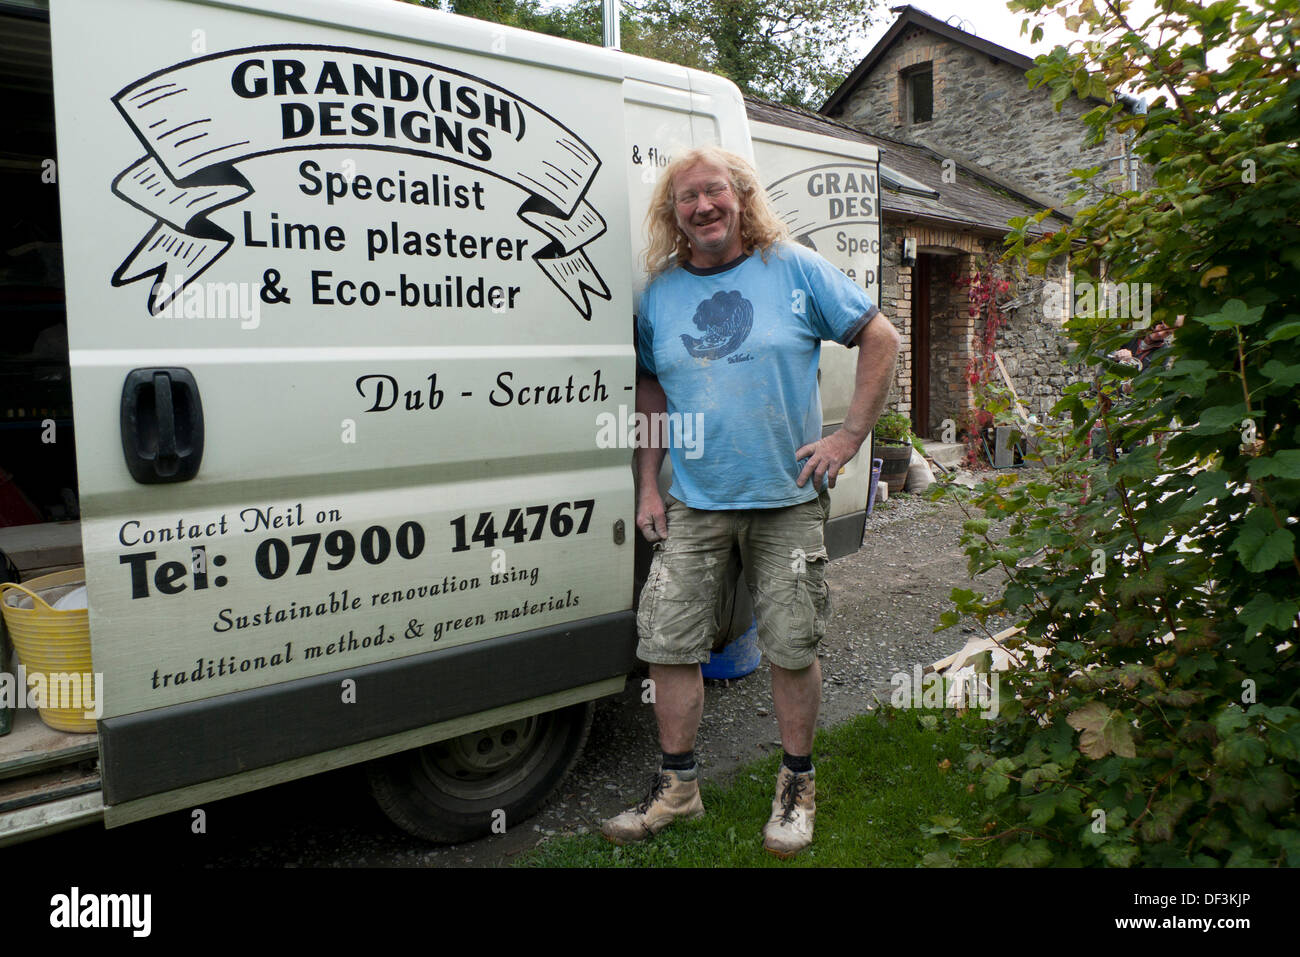 """Llanwrda, Wales UK Fri 27th Sept 2013. Neil Plume, Specialist Lime Plasterer and Eco-builder and owner of """"Grand(ish) Stock Photo"""